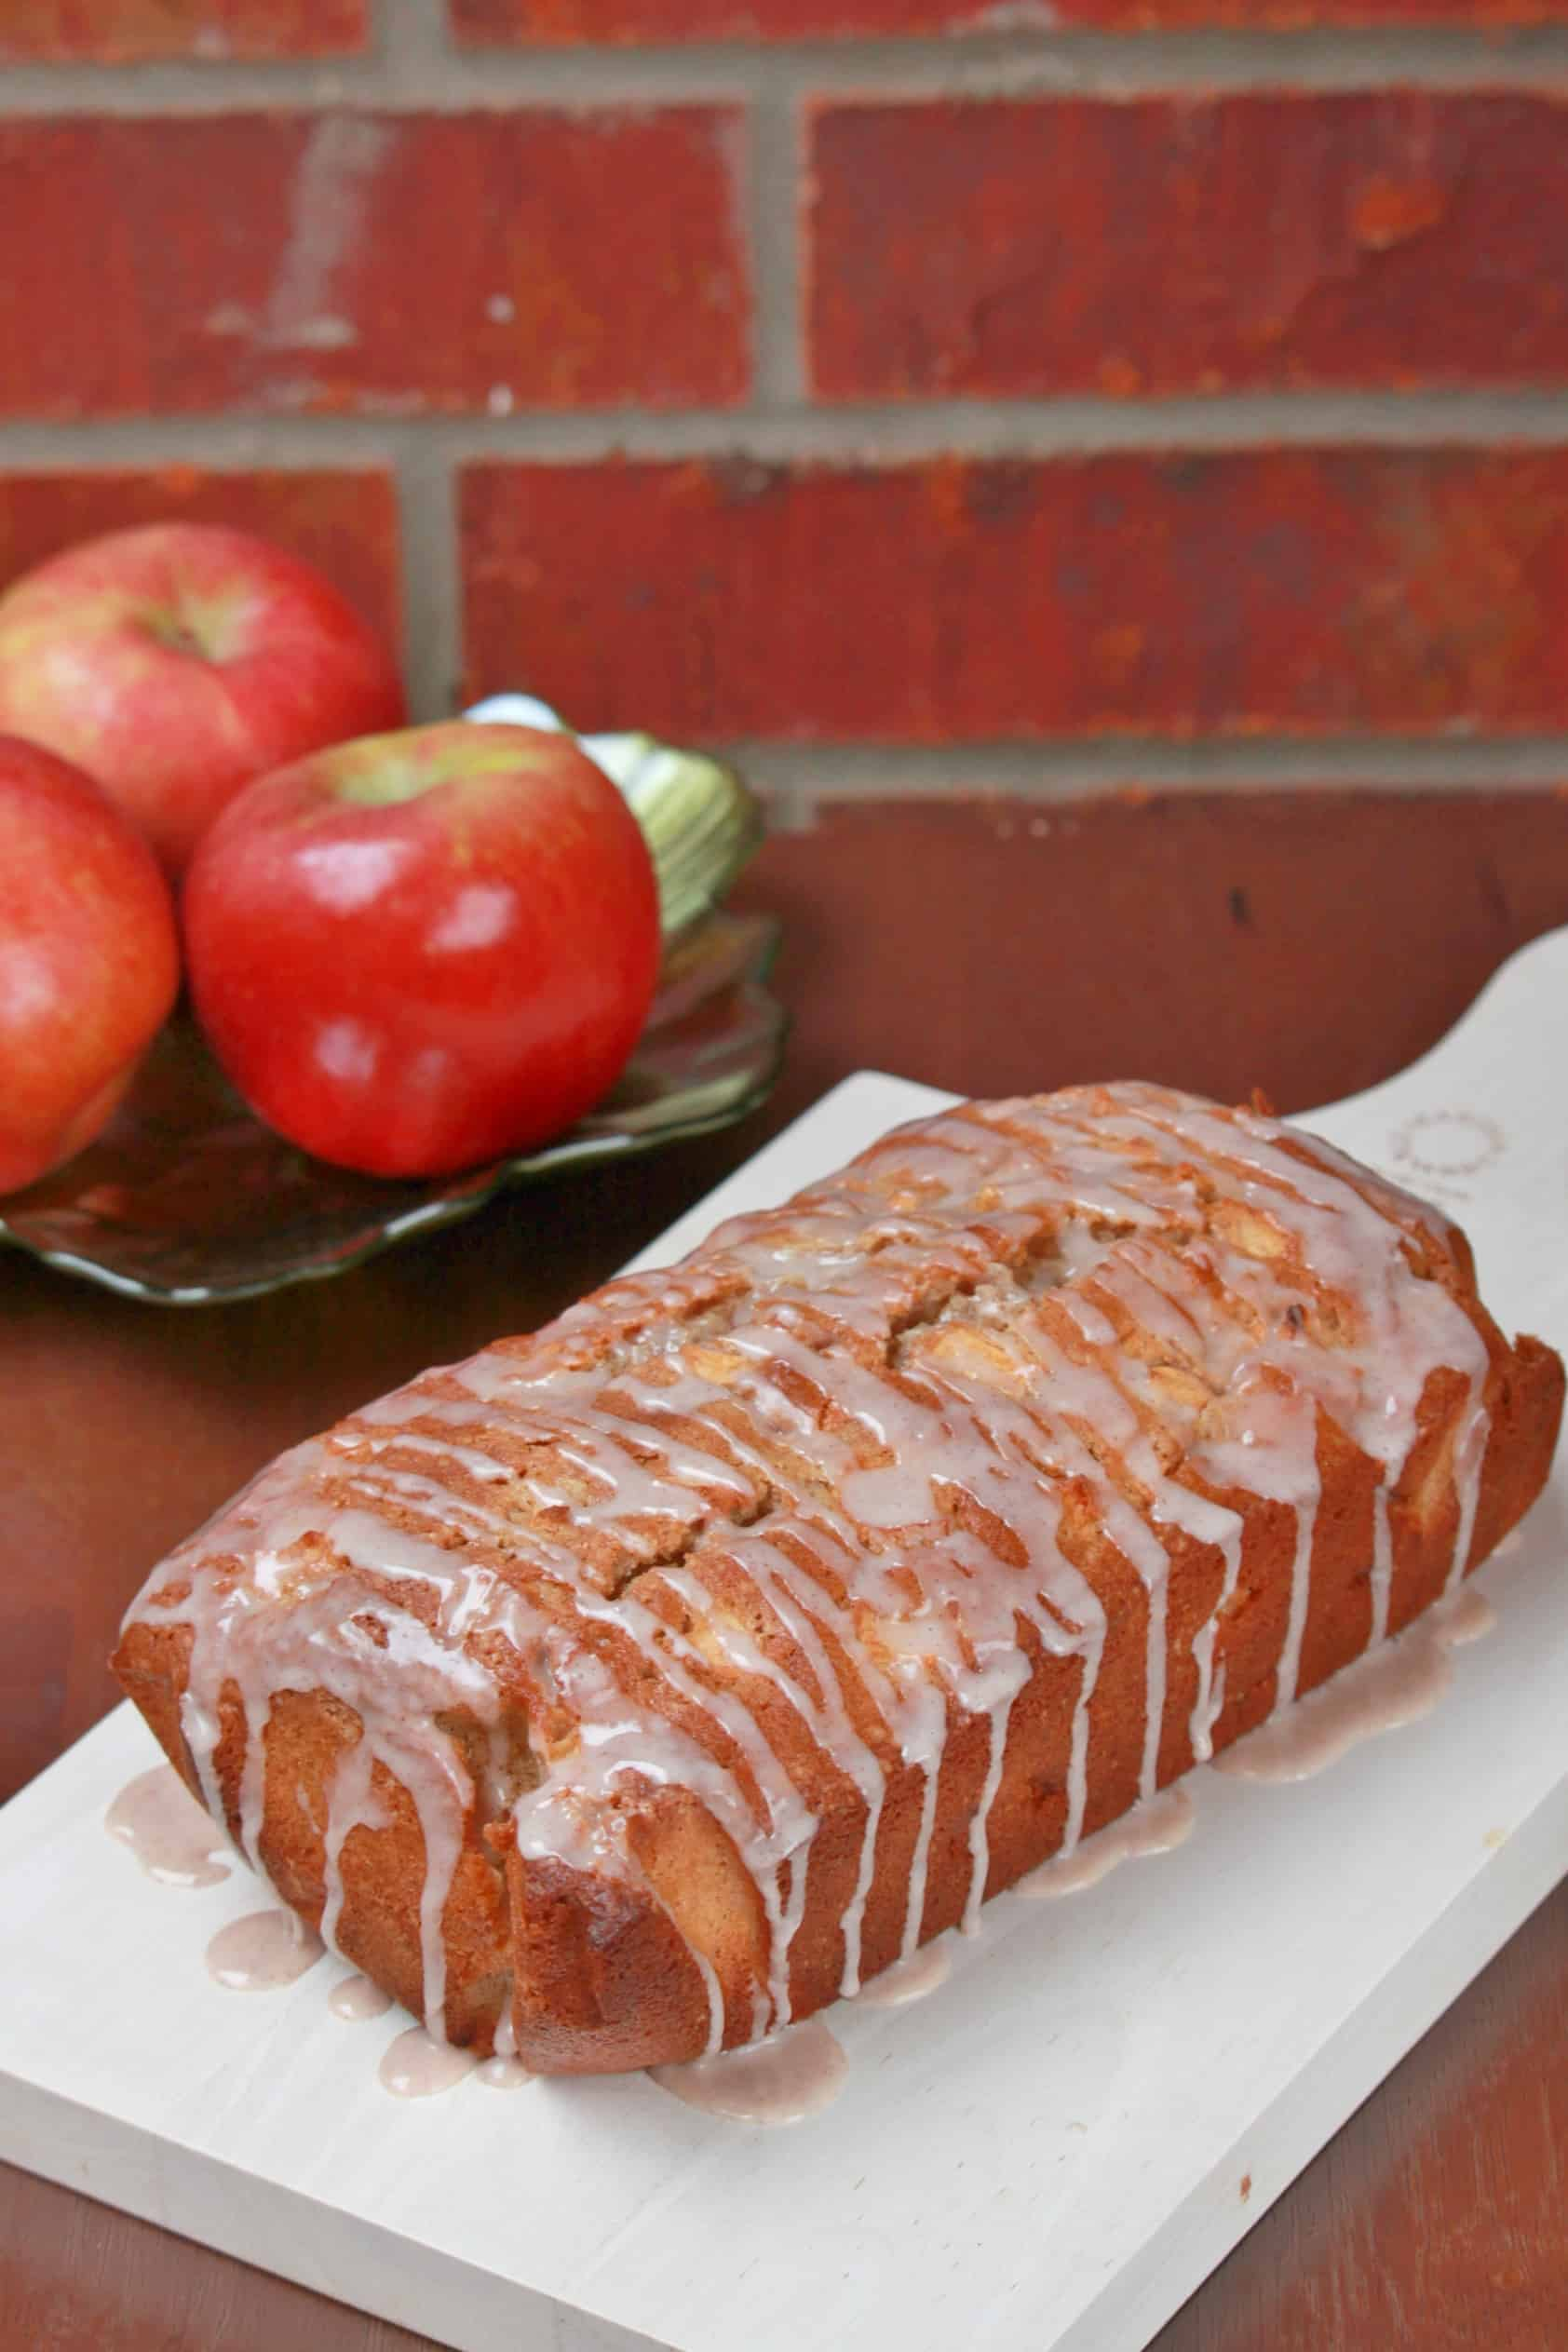 Cinnamon Glazed Apple Bread